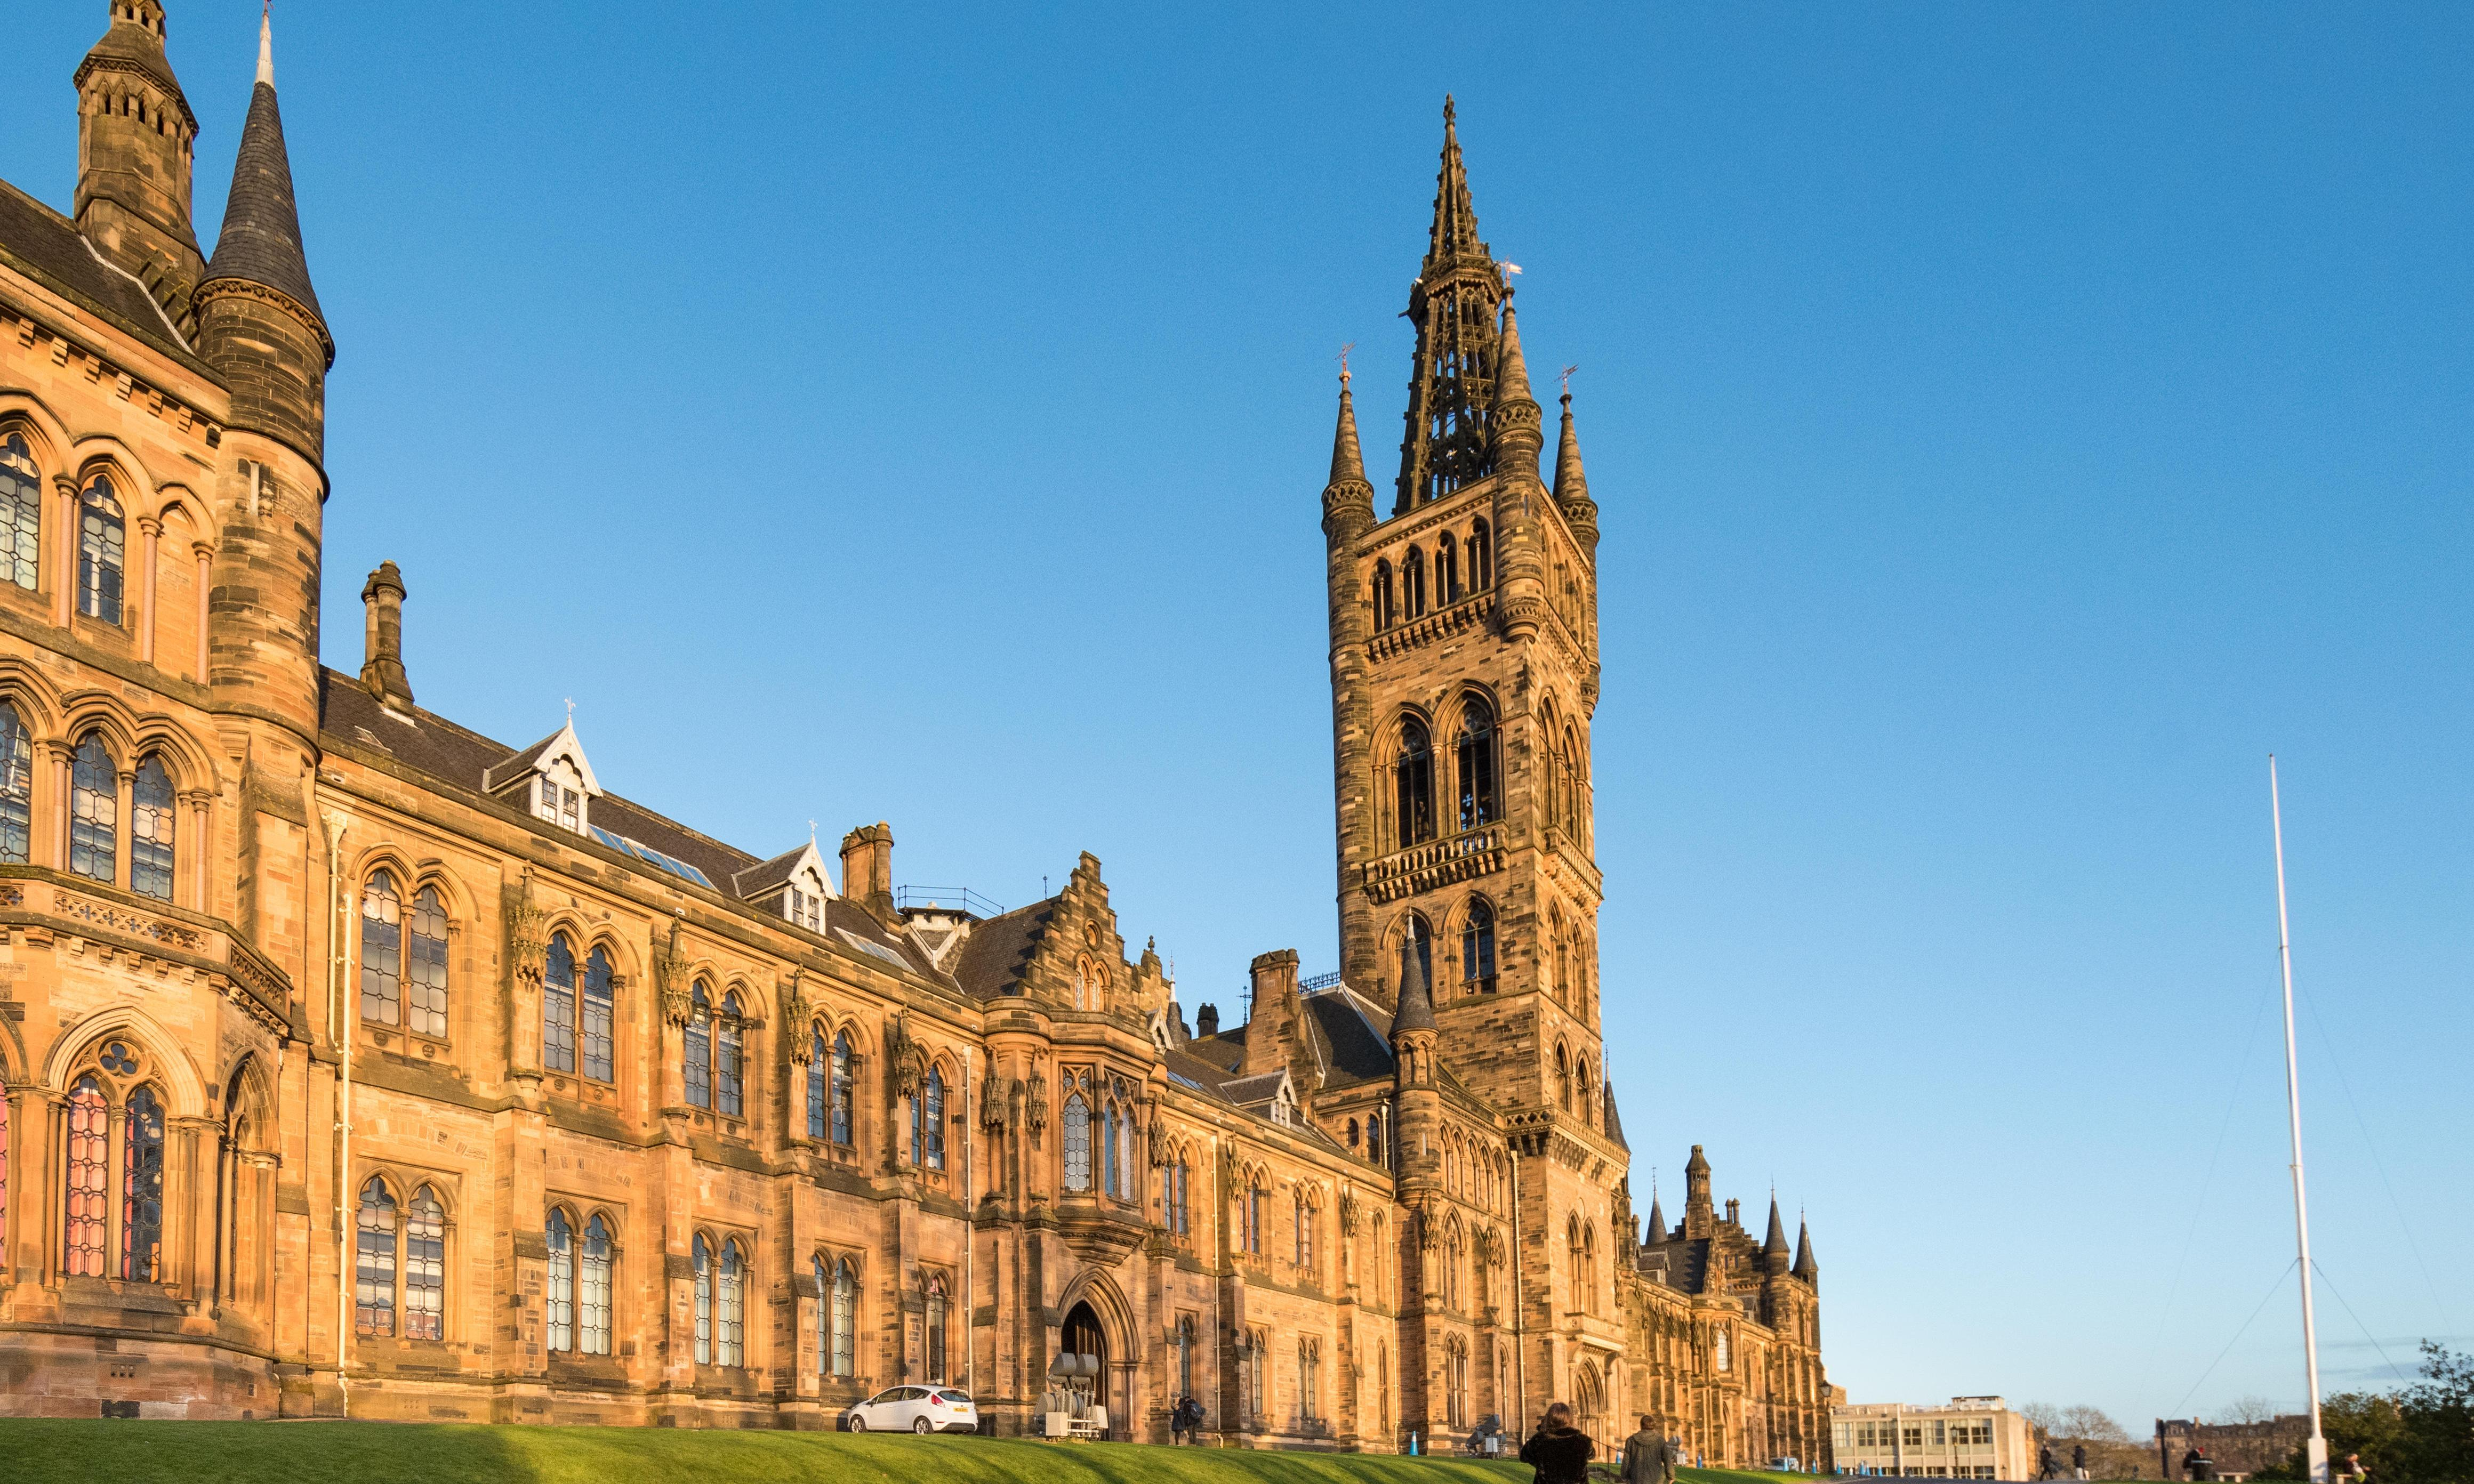 Glasgow University to pay £20m in slave trade reparations